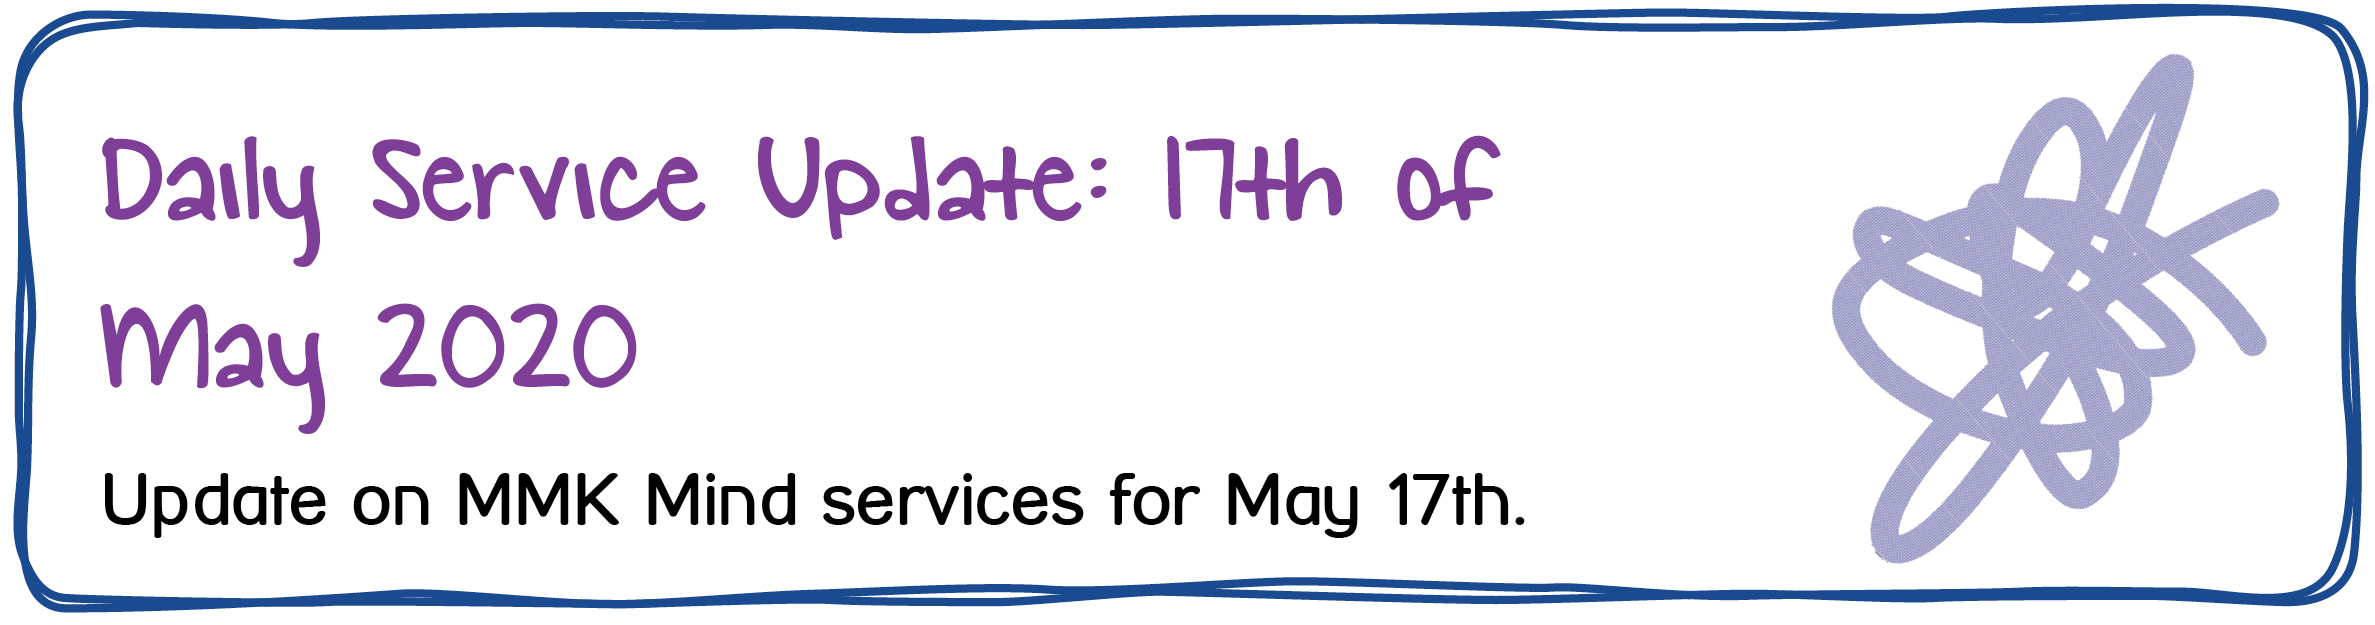 Daily Service Update: 17th of May 2020. Update on MMK Mind services for May 17th.